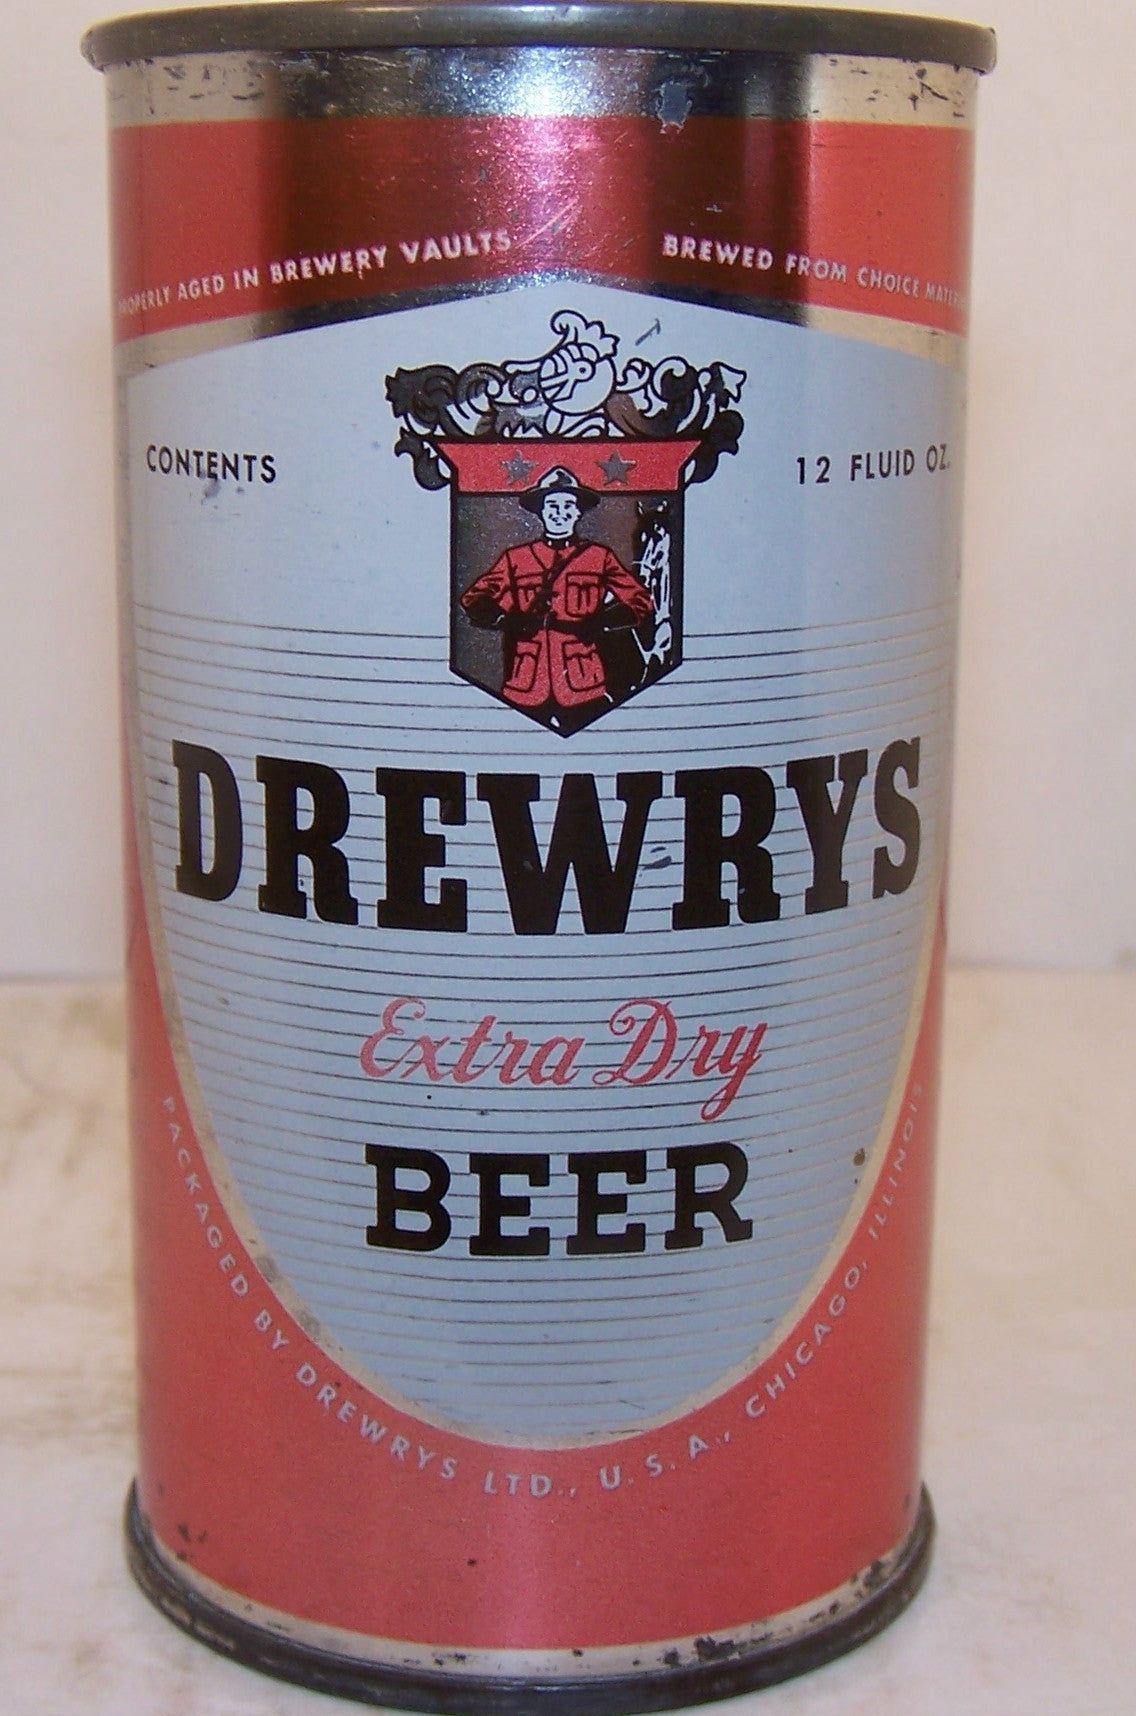 Drewrys Extra Dry Beer, USBC 54-33 Chicago, Grade 1- sold on 09/15/16